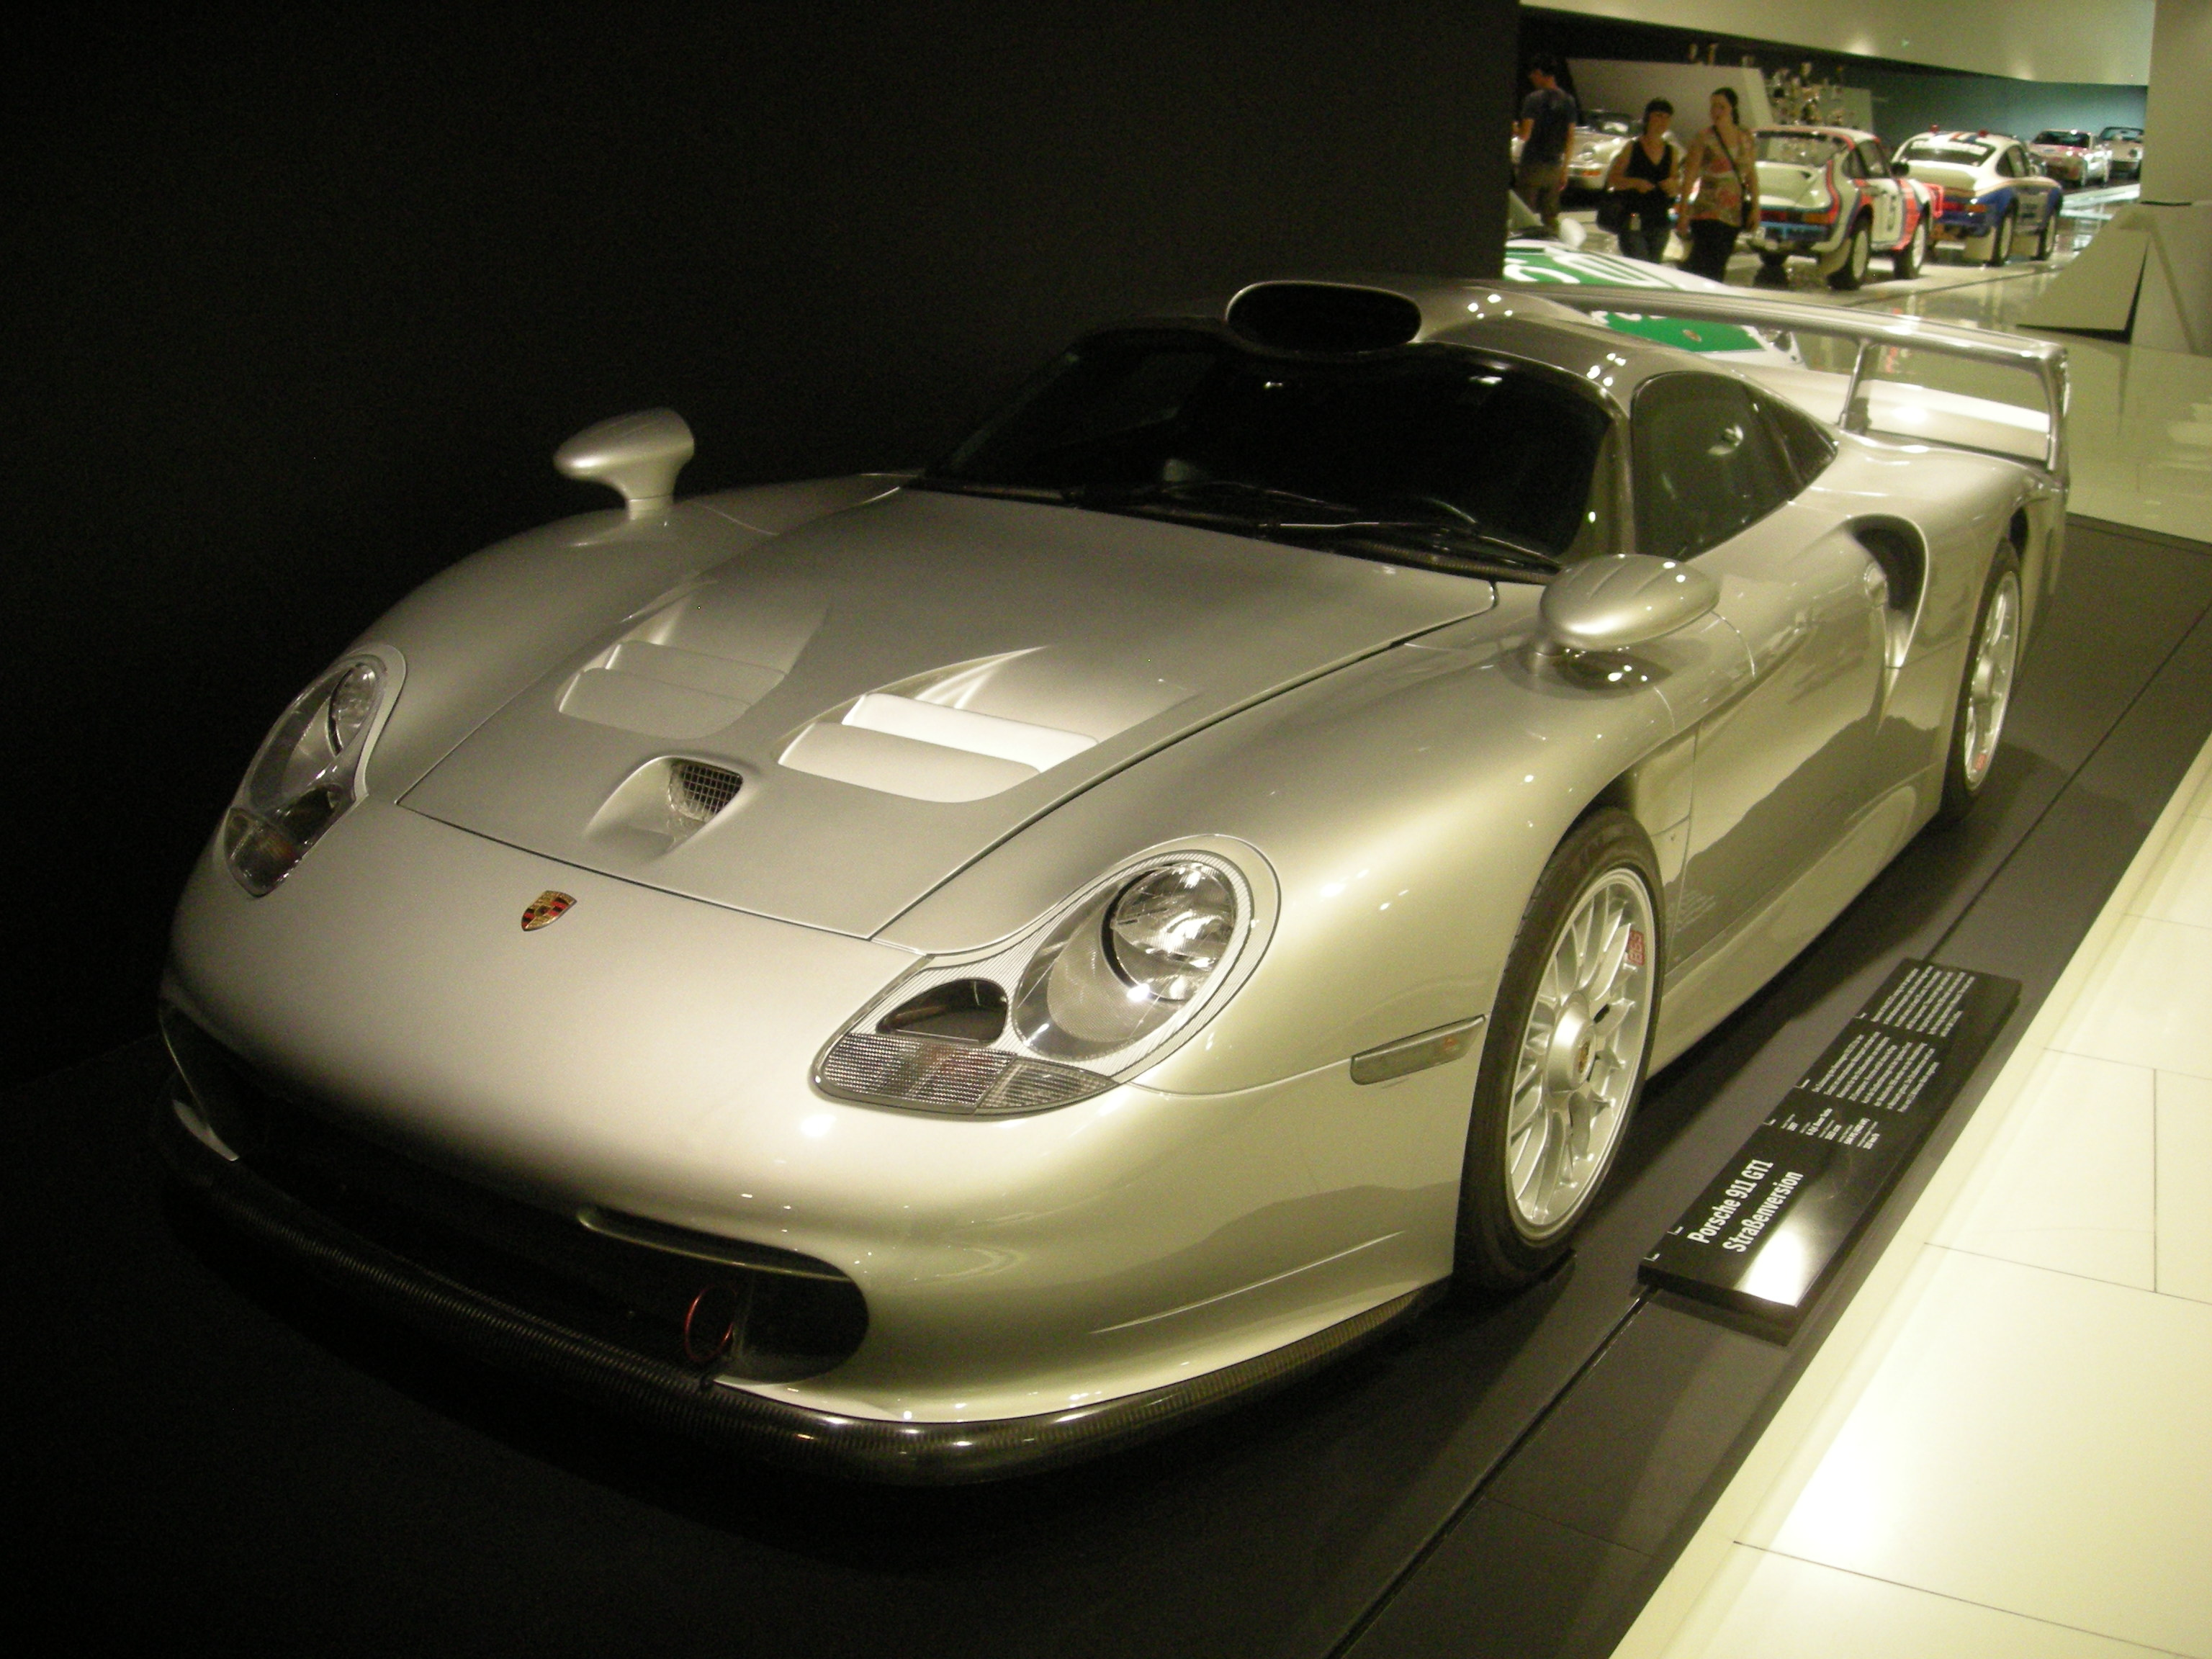 file stuttgart jul 2012 65 porsche museum 1997 porsche 911 gt1 stra envers. Black Bedroom Furniture Sets. Home Design Ideas